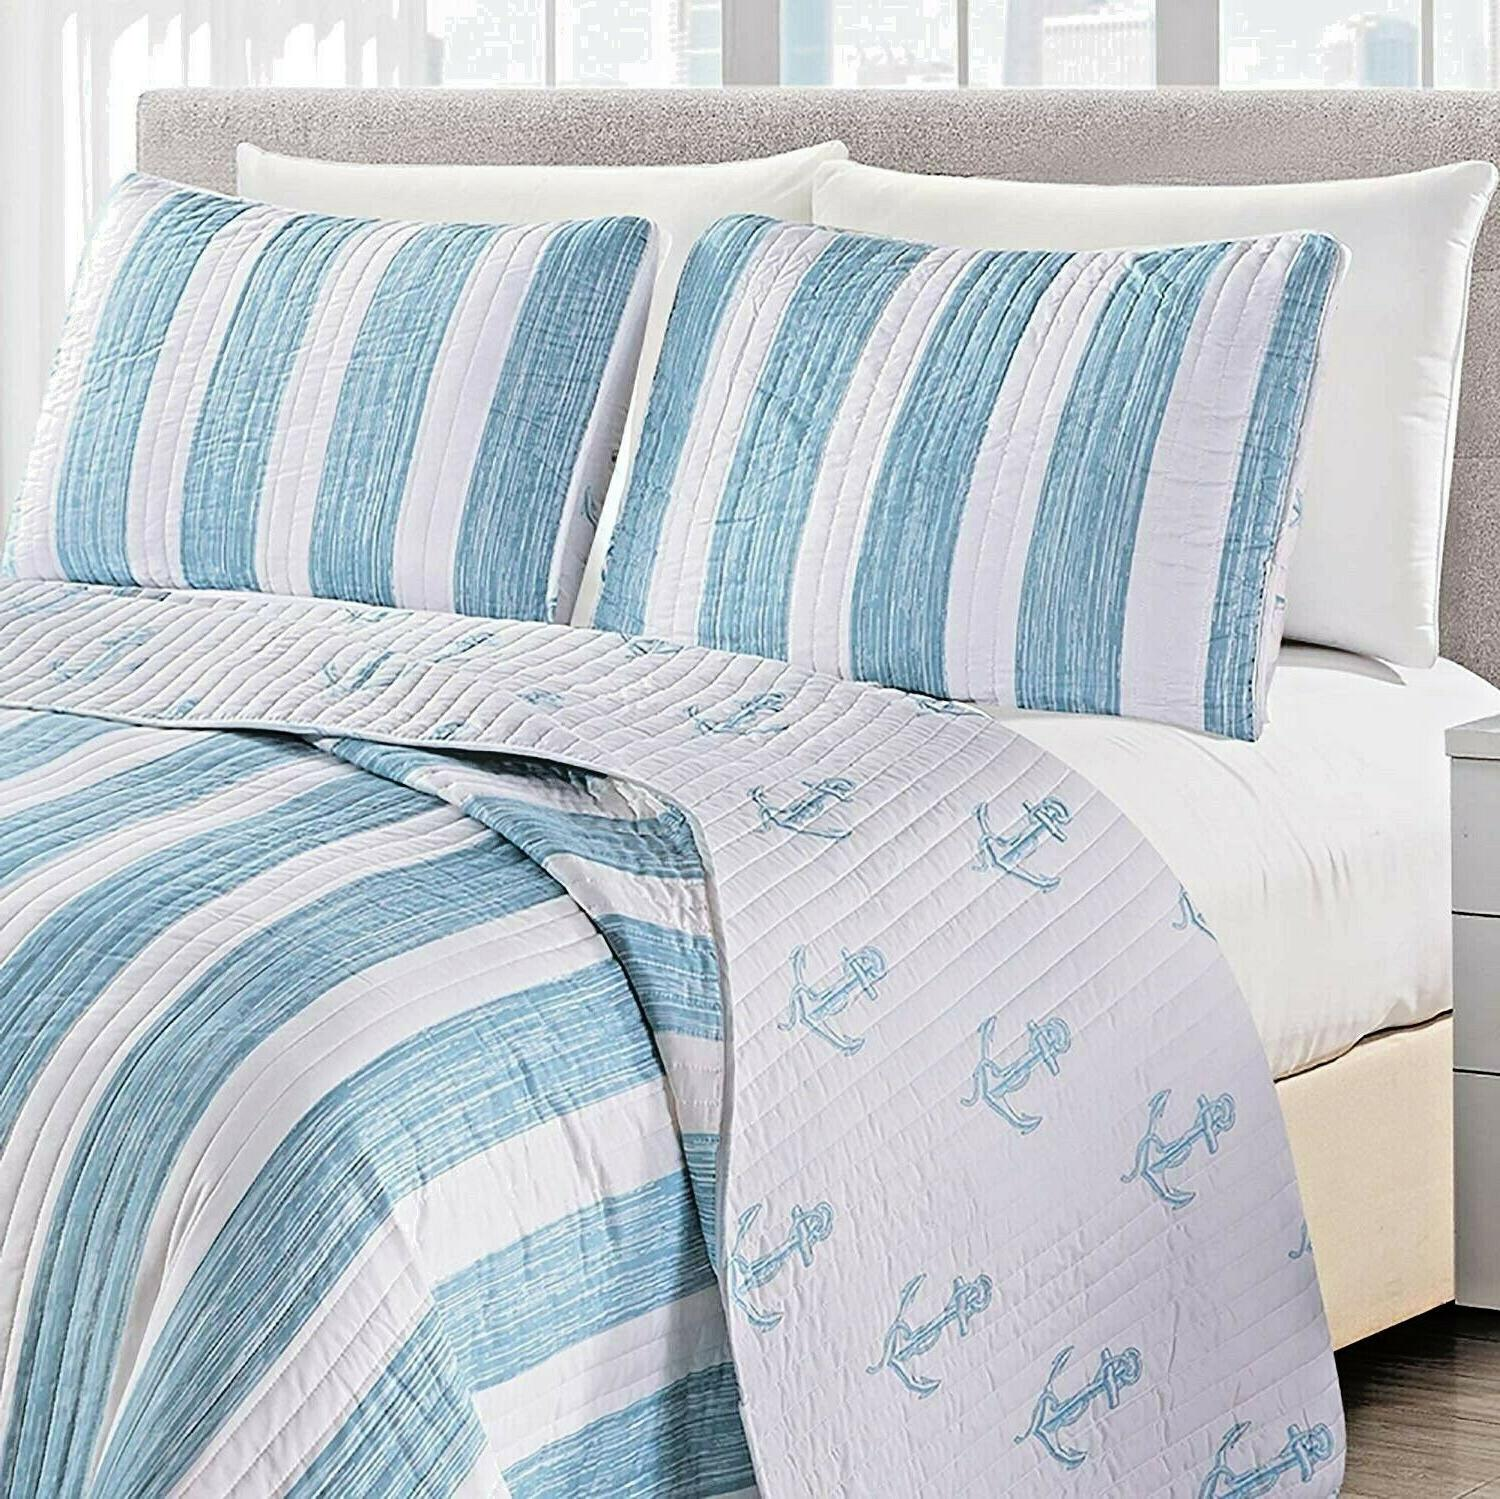 Coastal Queen Beach Theme Comforter Bed